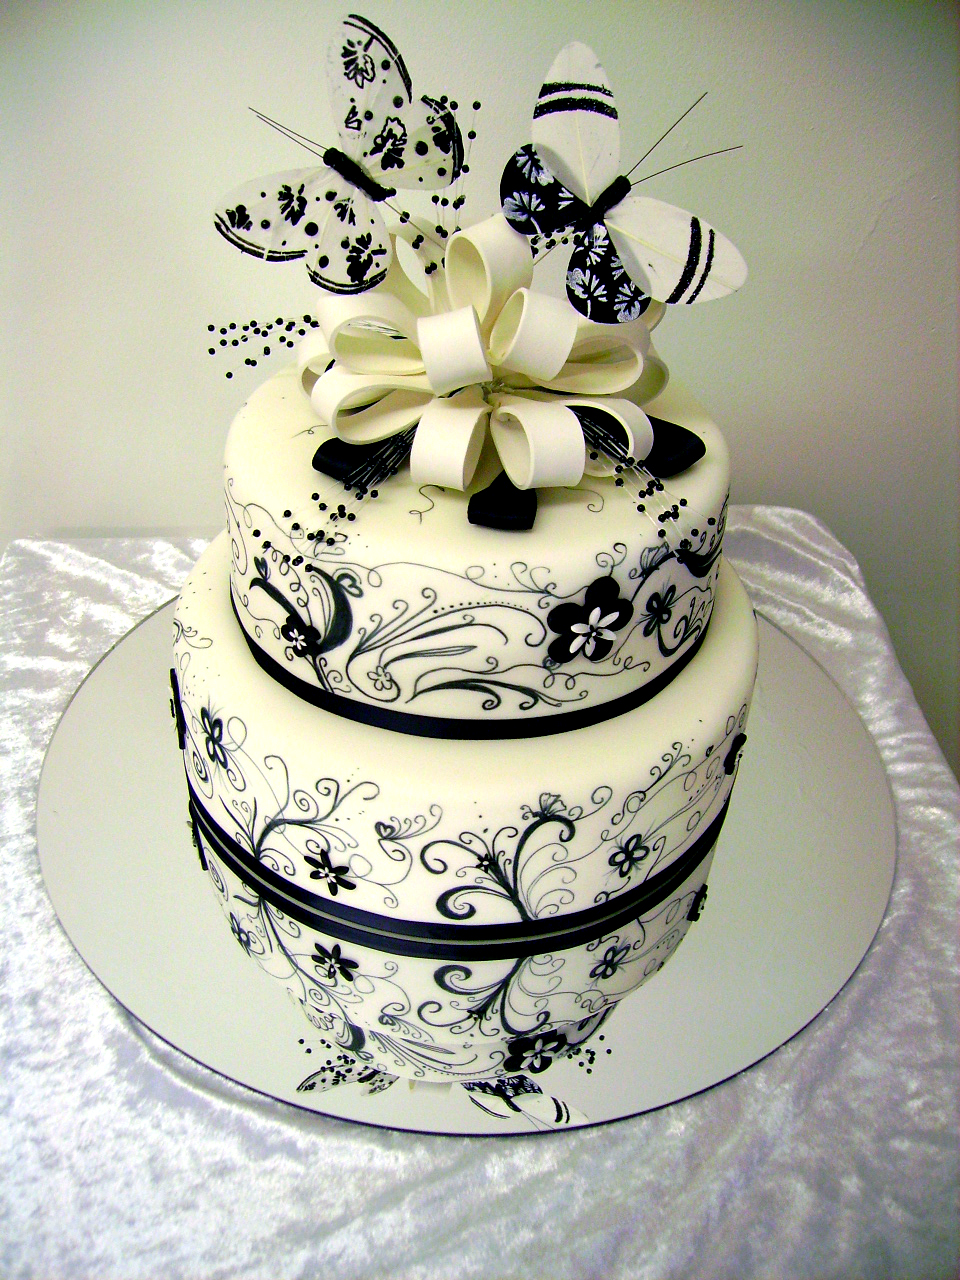 Amazing Black and White Cake Decorating 960 x 1280 · 1145 kB · jpeg